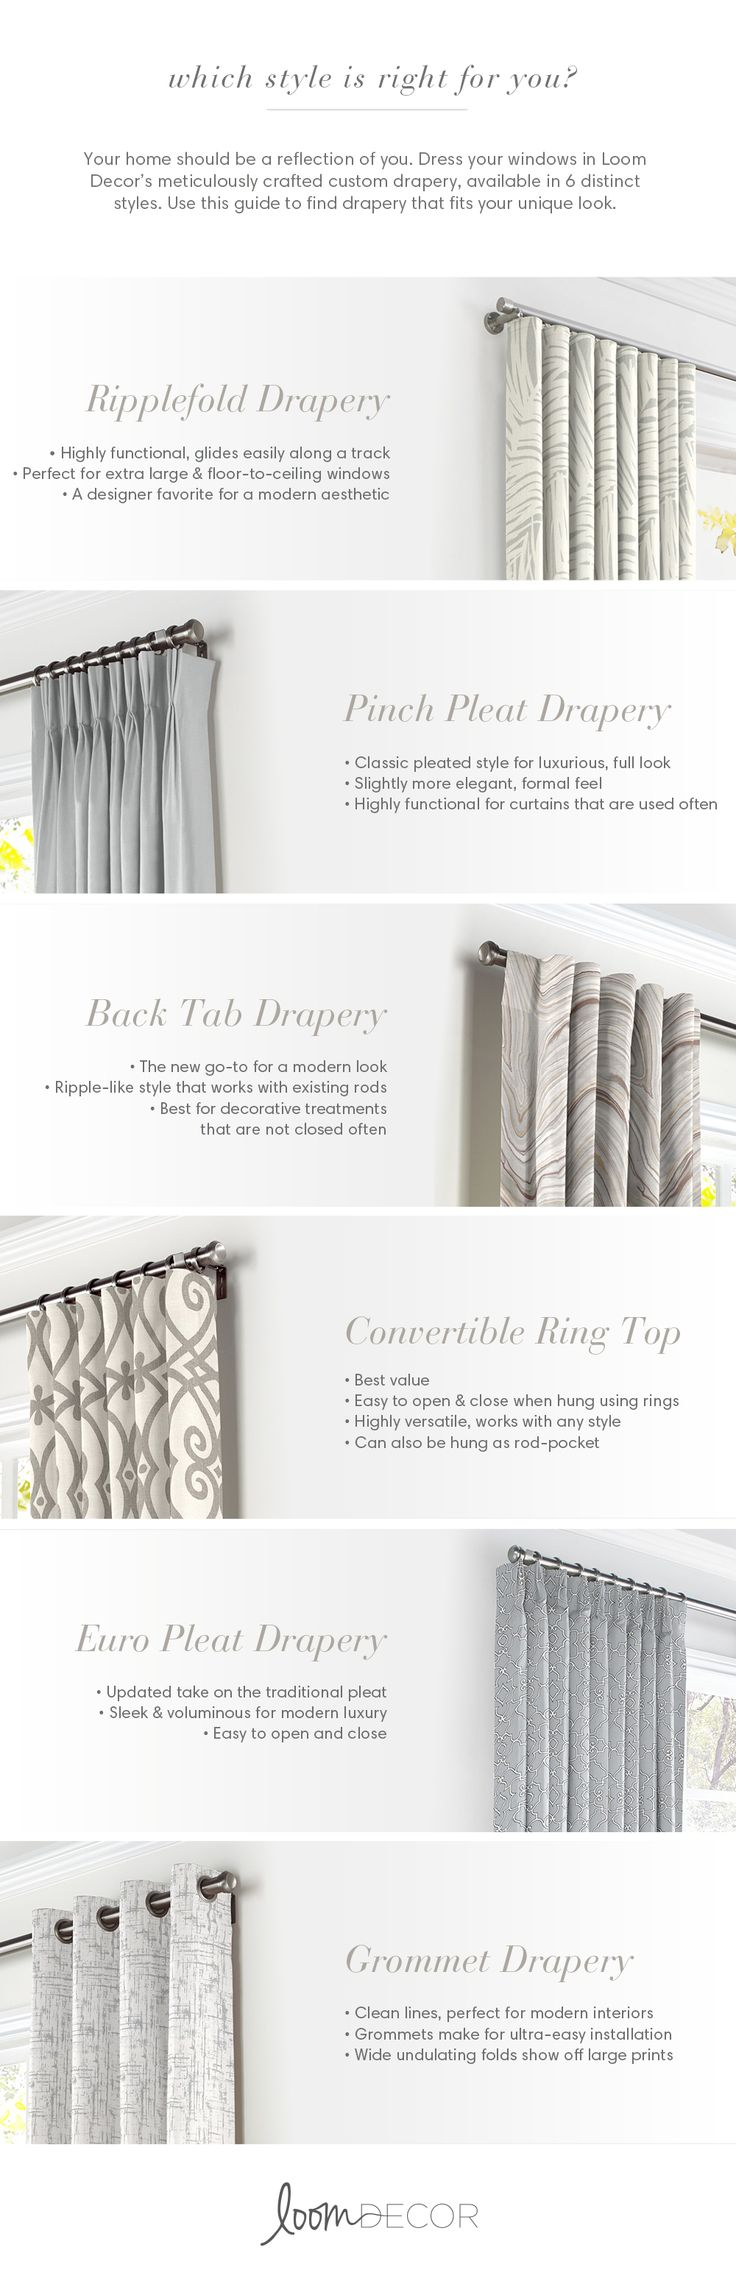 Whether classic or modern, streamlined or glam, your curtains should be a reflection of your home. Use Loom Decor's drapery guide to find the window treatment style to enhance your home's design.